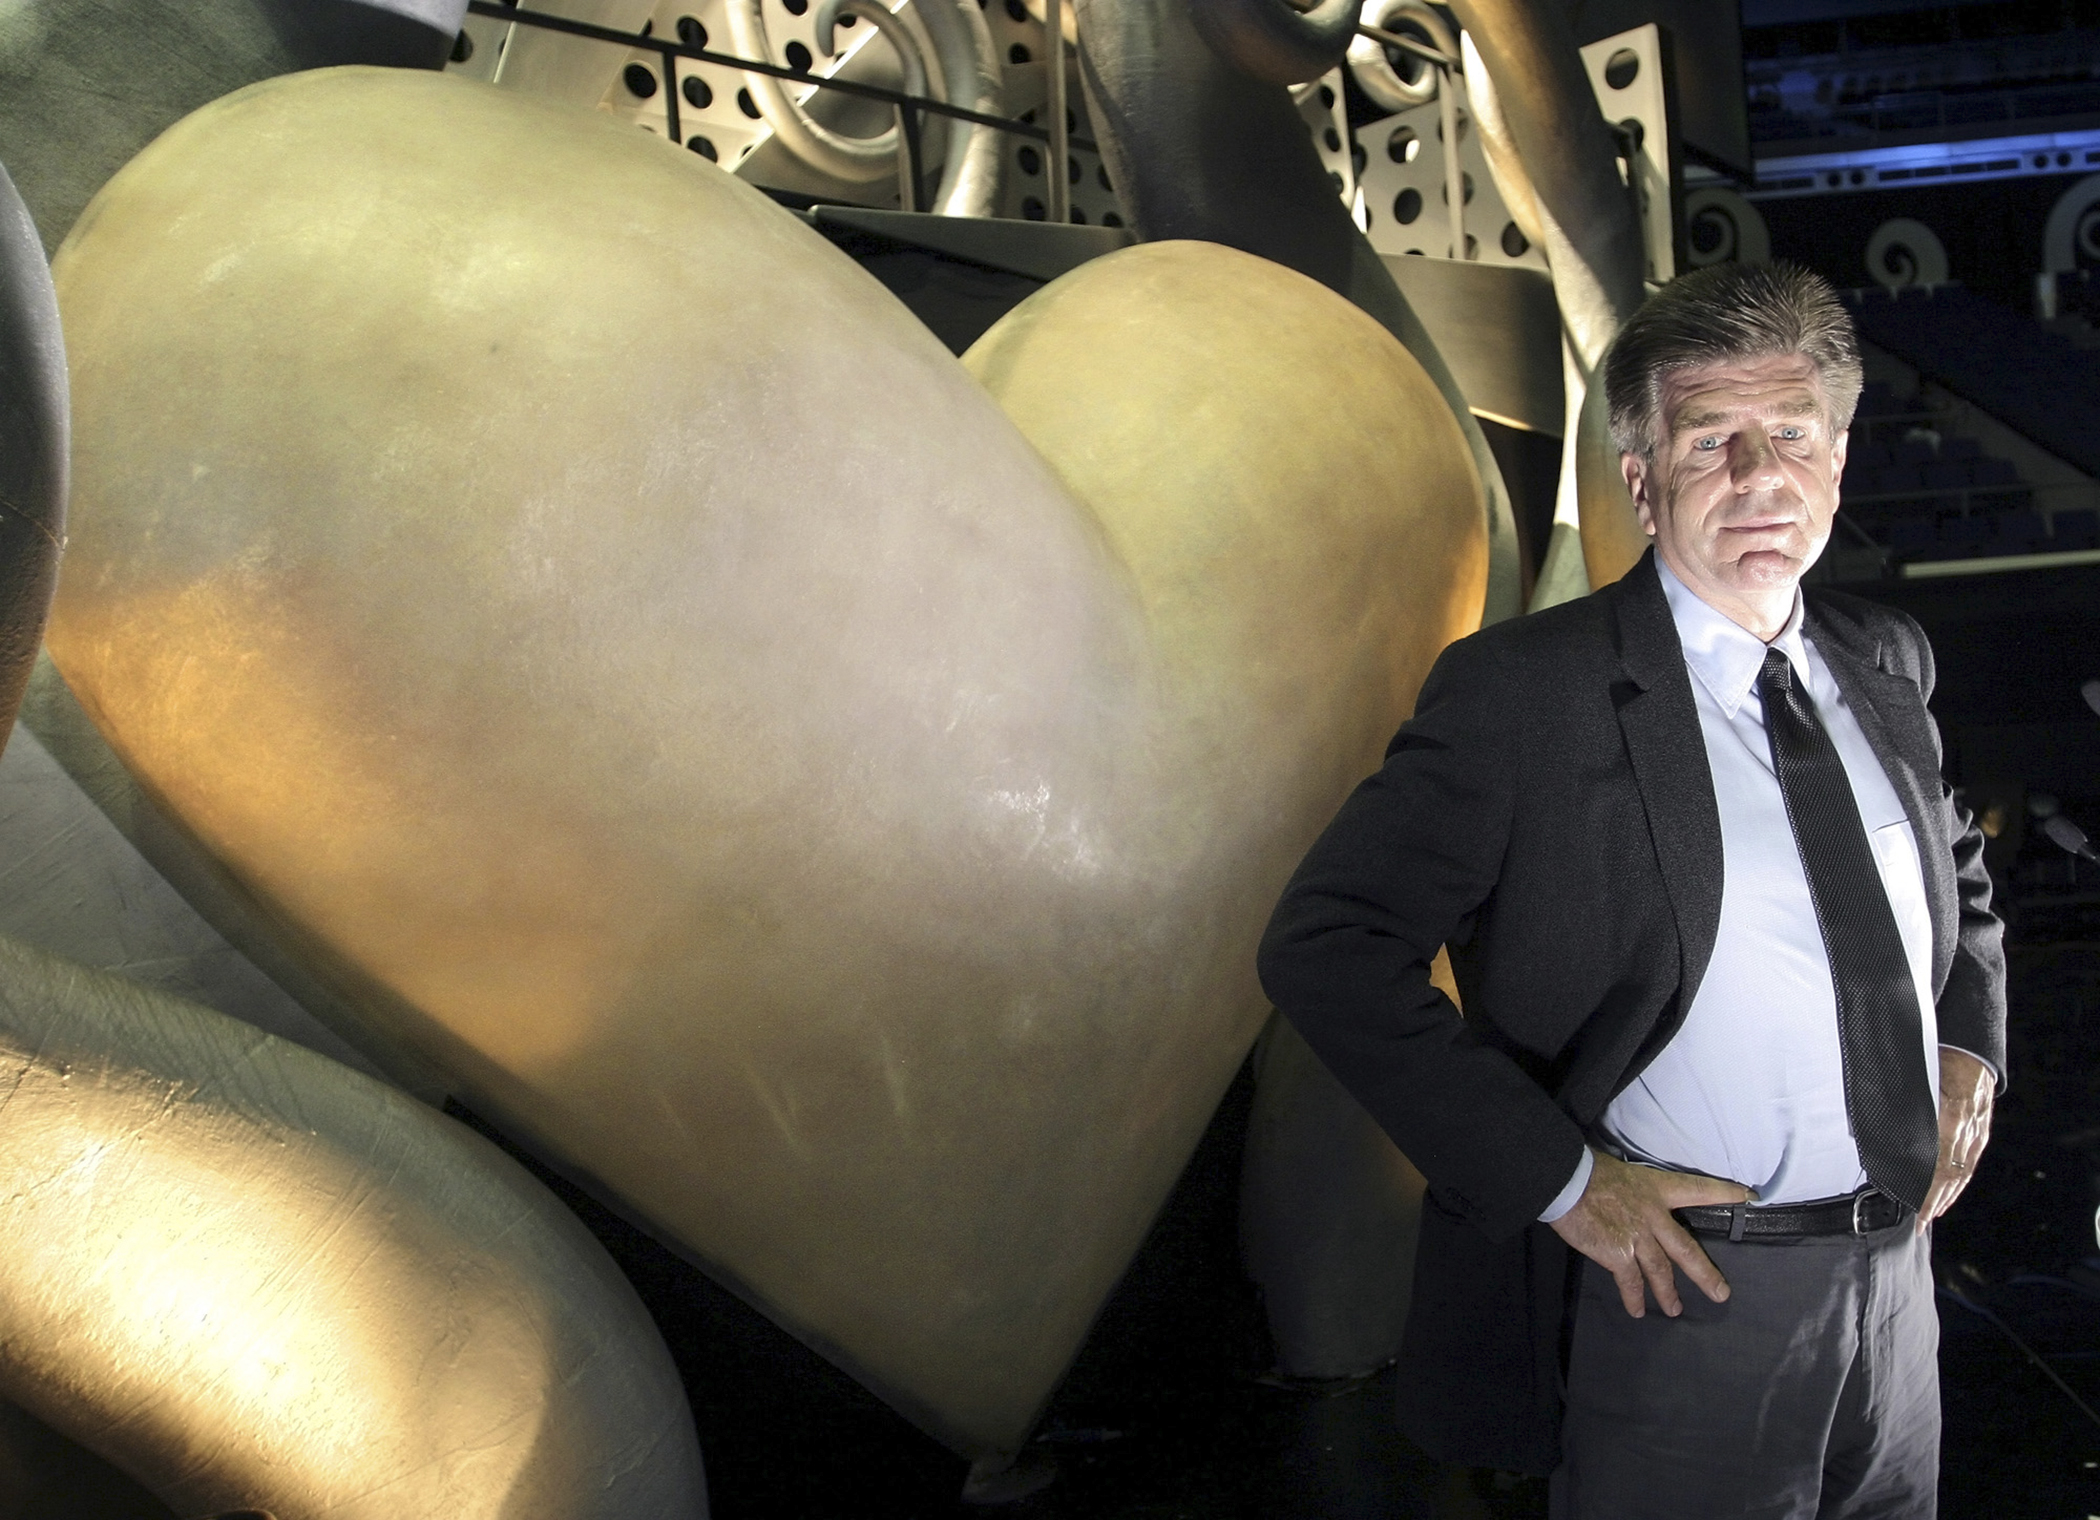 MTV Networks chairman and chief executive officer Tom Freston poses in front of a giant heart on the stage of the MTV Asia Awards in the Singapore Indoor Stadium on Friday, February 13, 2004.